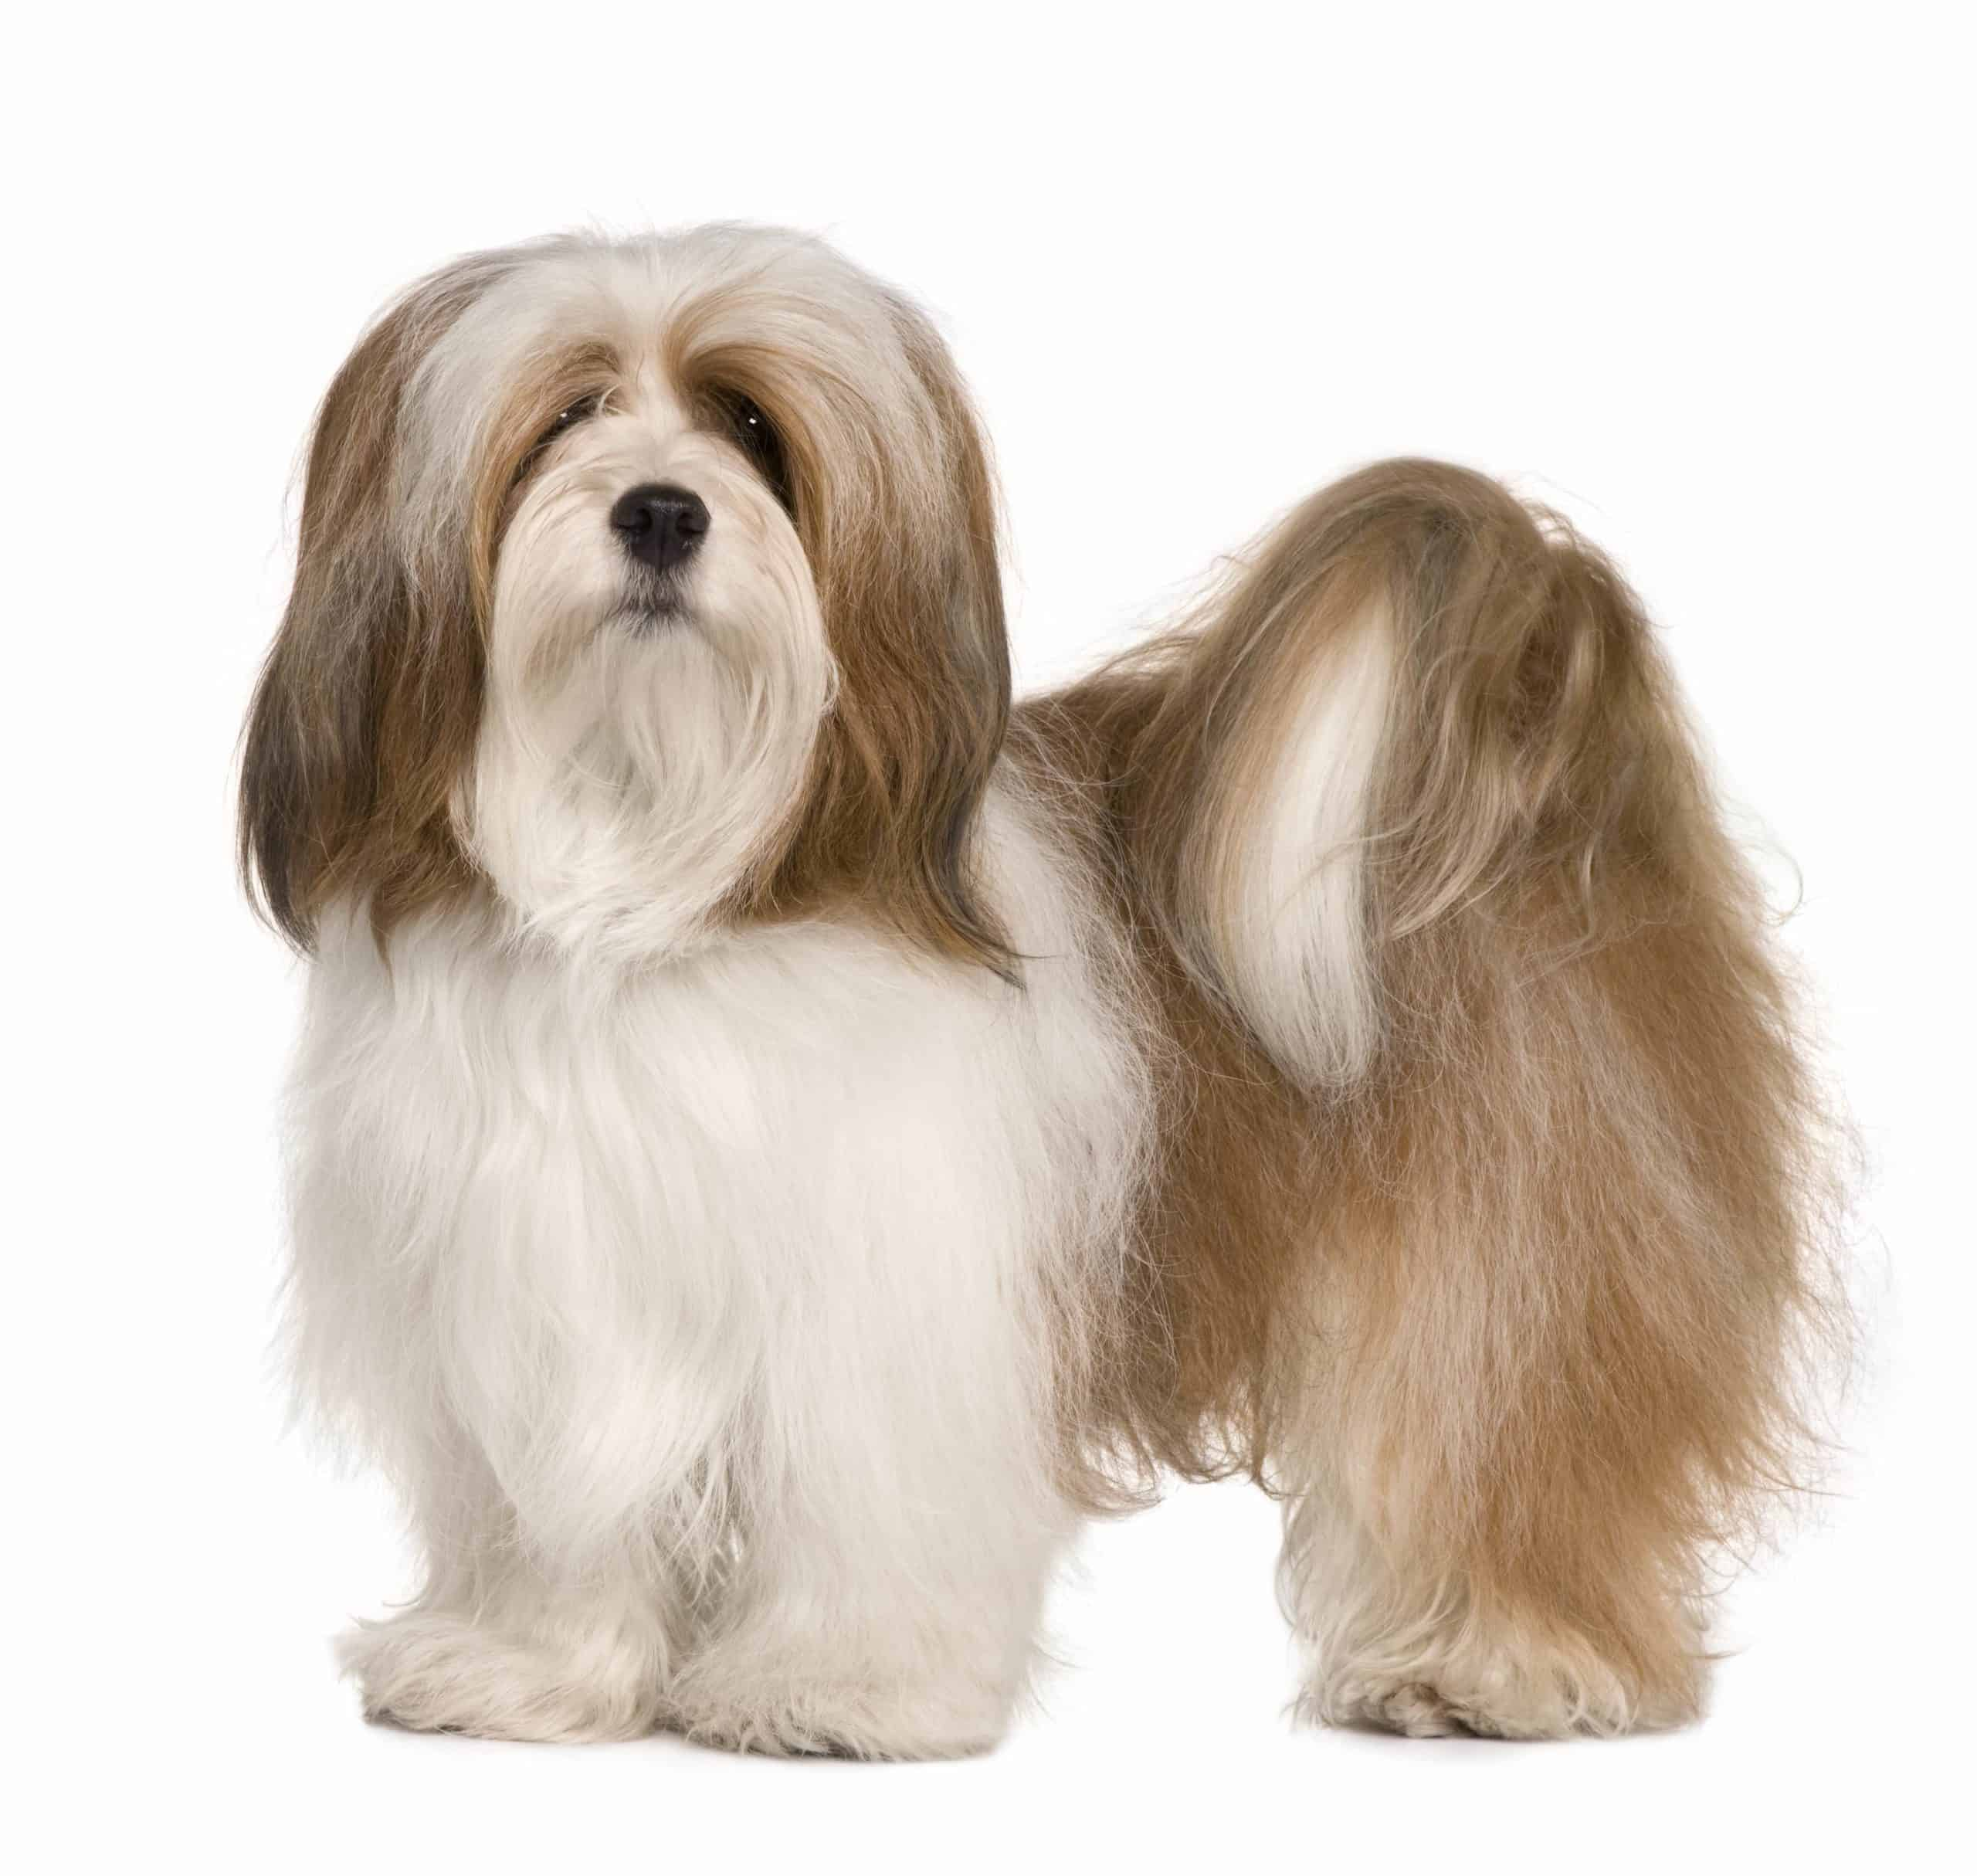 Lhasa Apso on white background. The Lhasa Apso is a high-maintenance dog that is loyal and intelligent. The dogs can be tricky to train, but need minimal exercise.